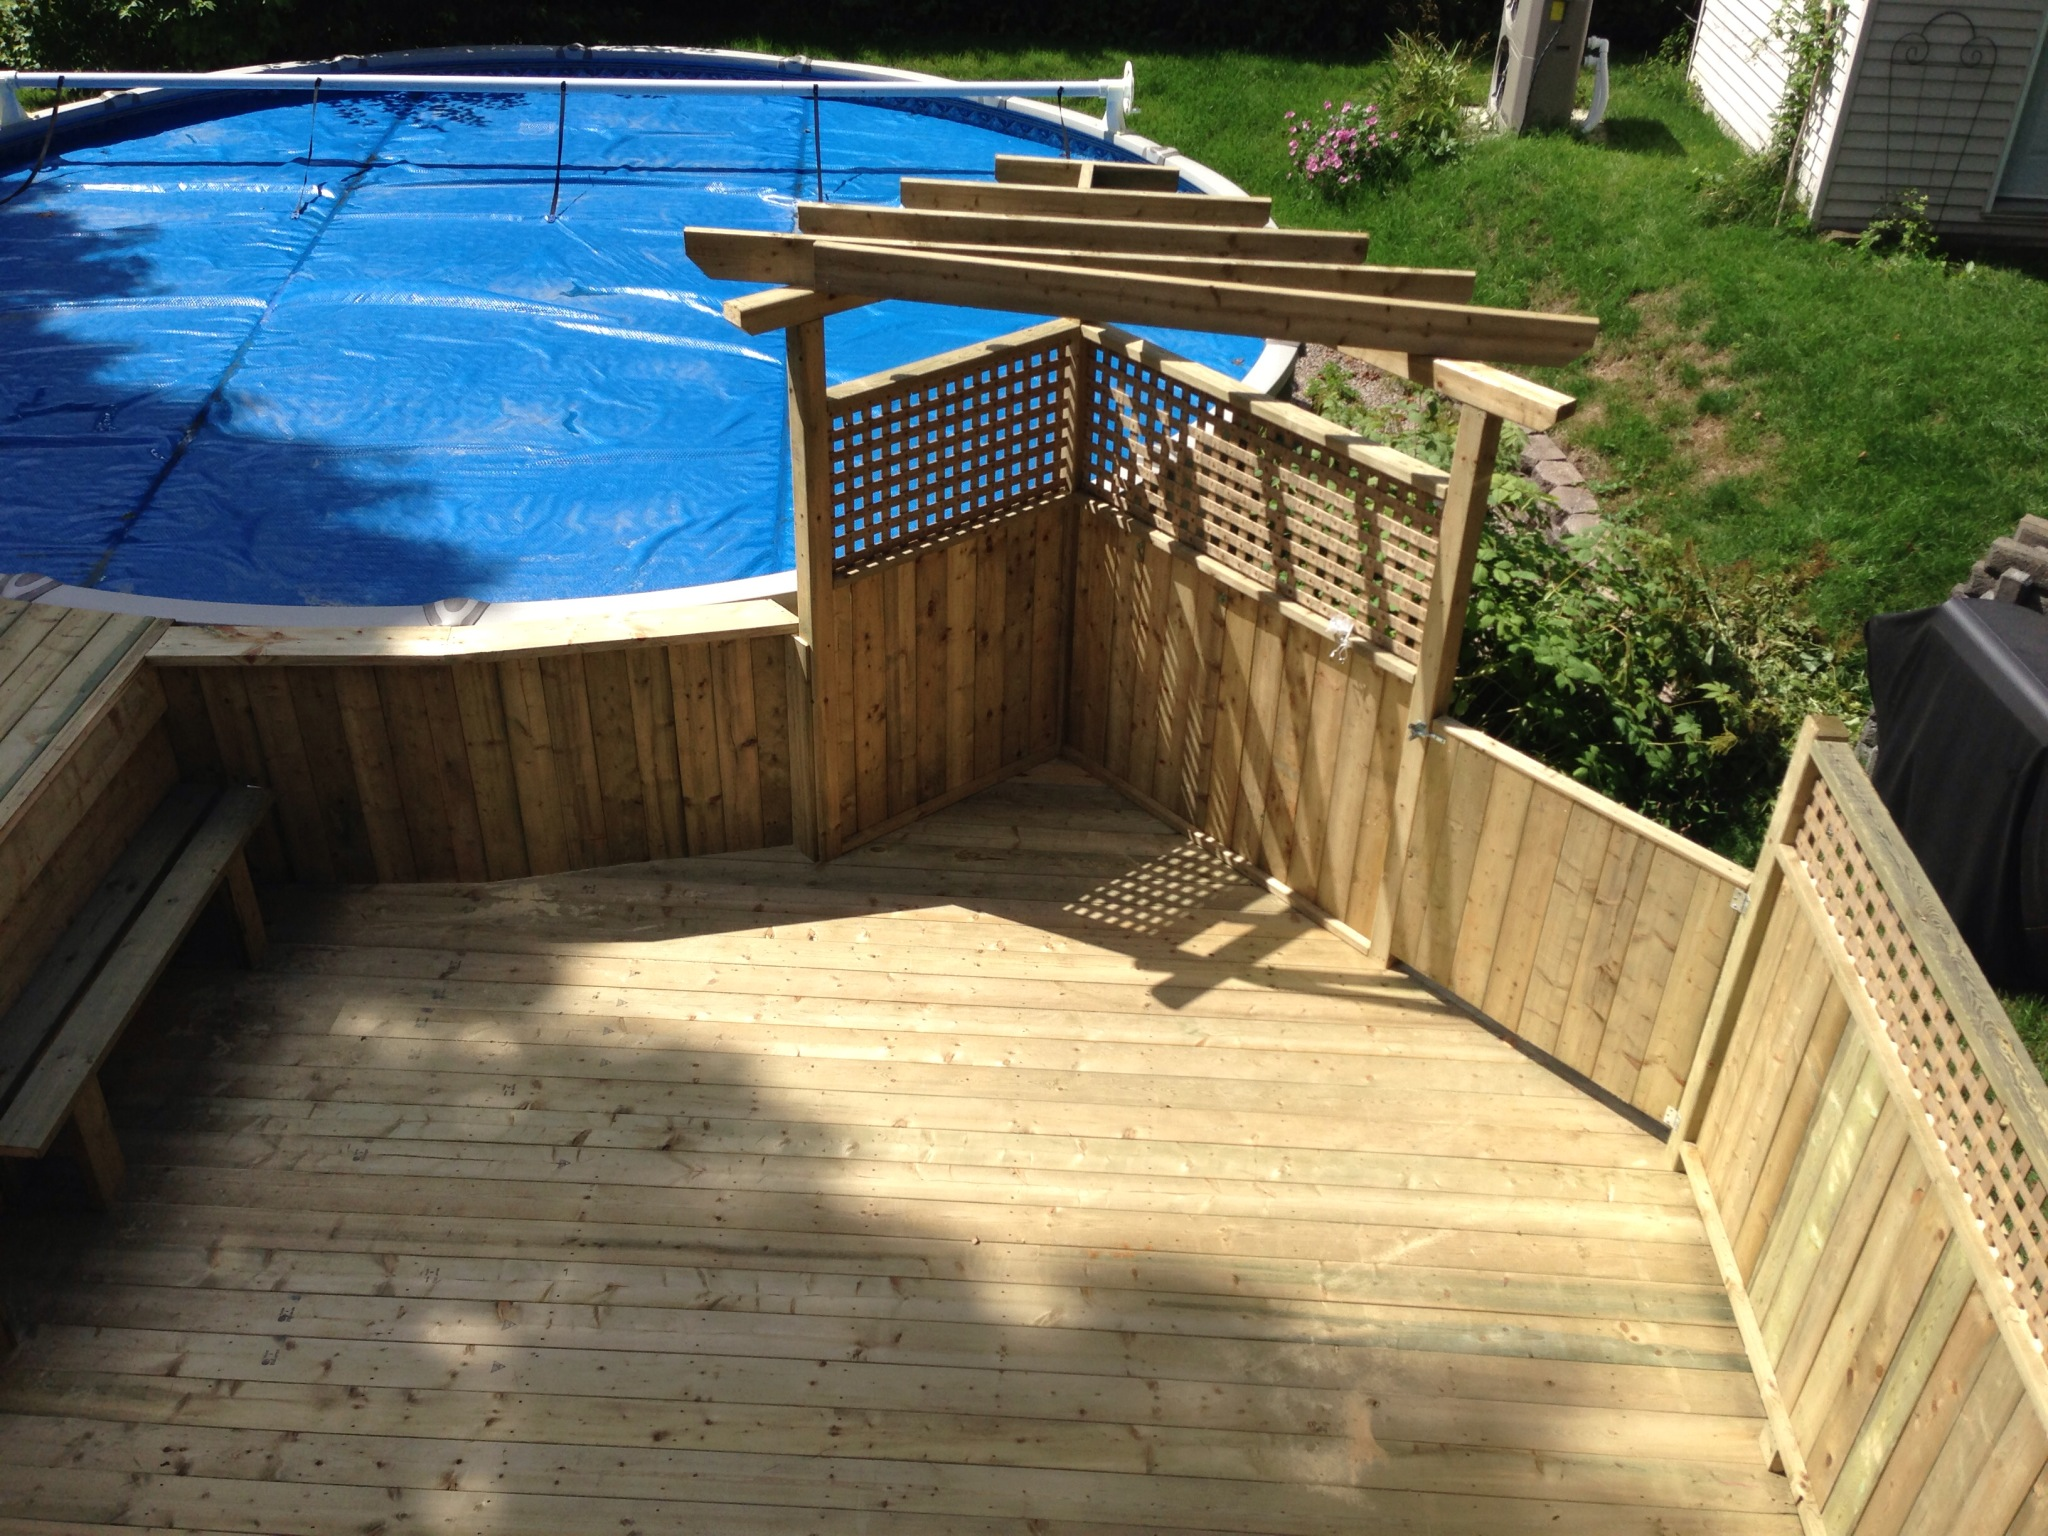 Patios decks piscine patio bois trait for Club piscine fermeture piscine hors terre